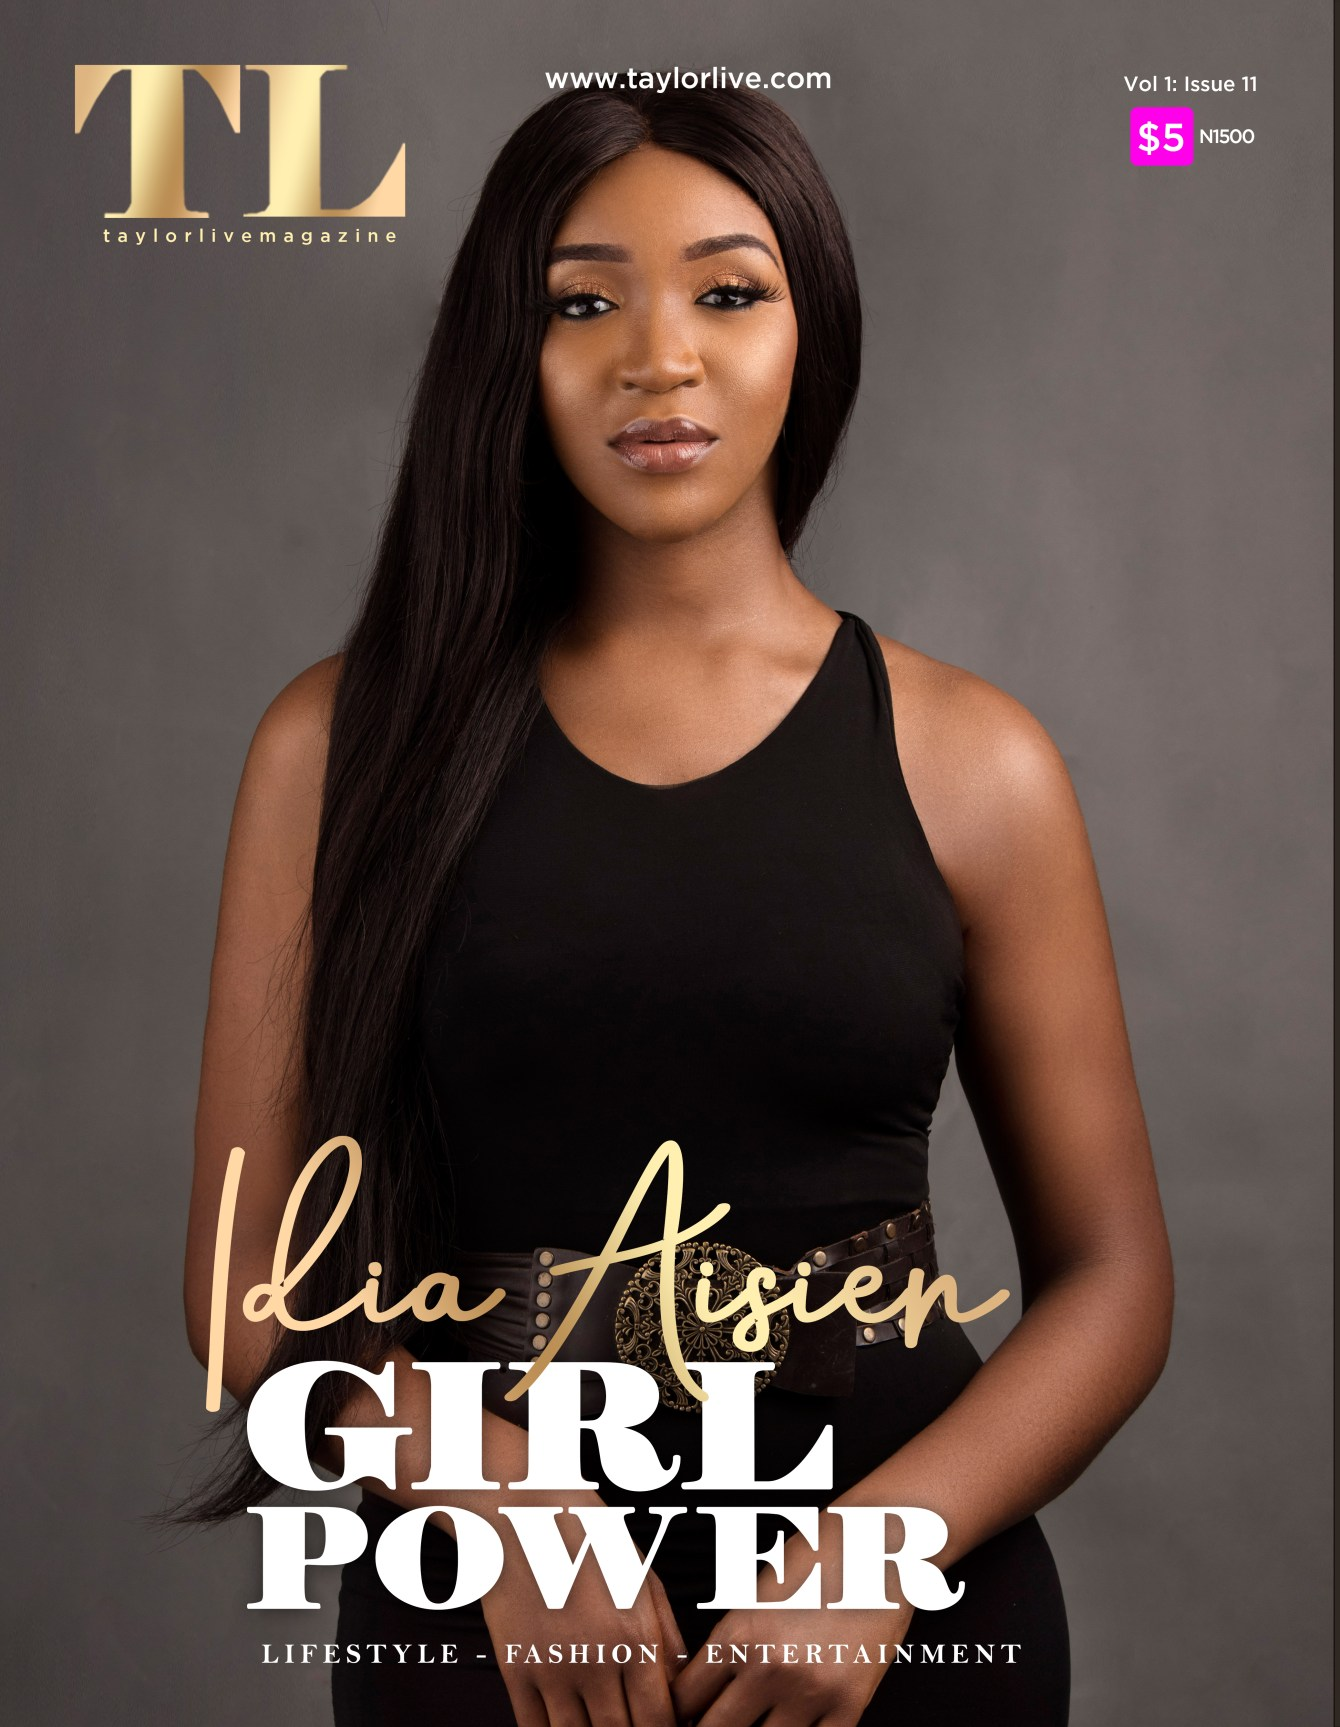 GIRL POWER Idia Aisien  Covers Taylor Live Magazine's Latest Issue